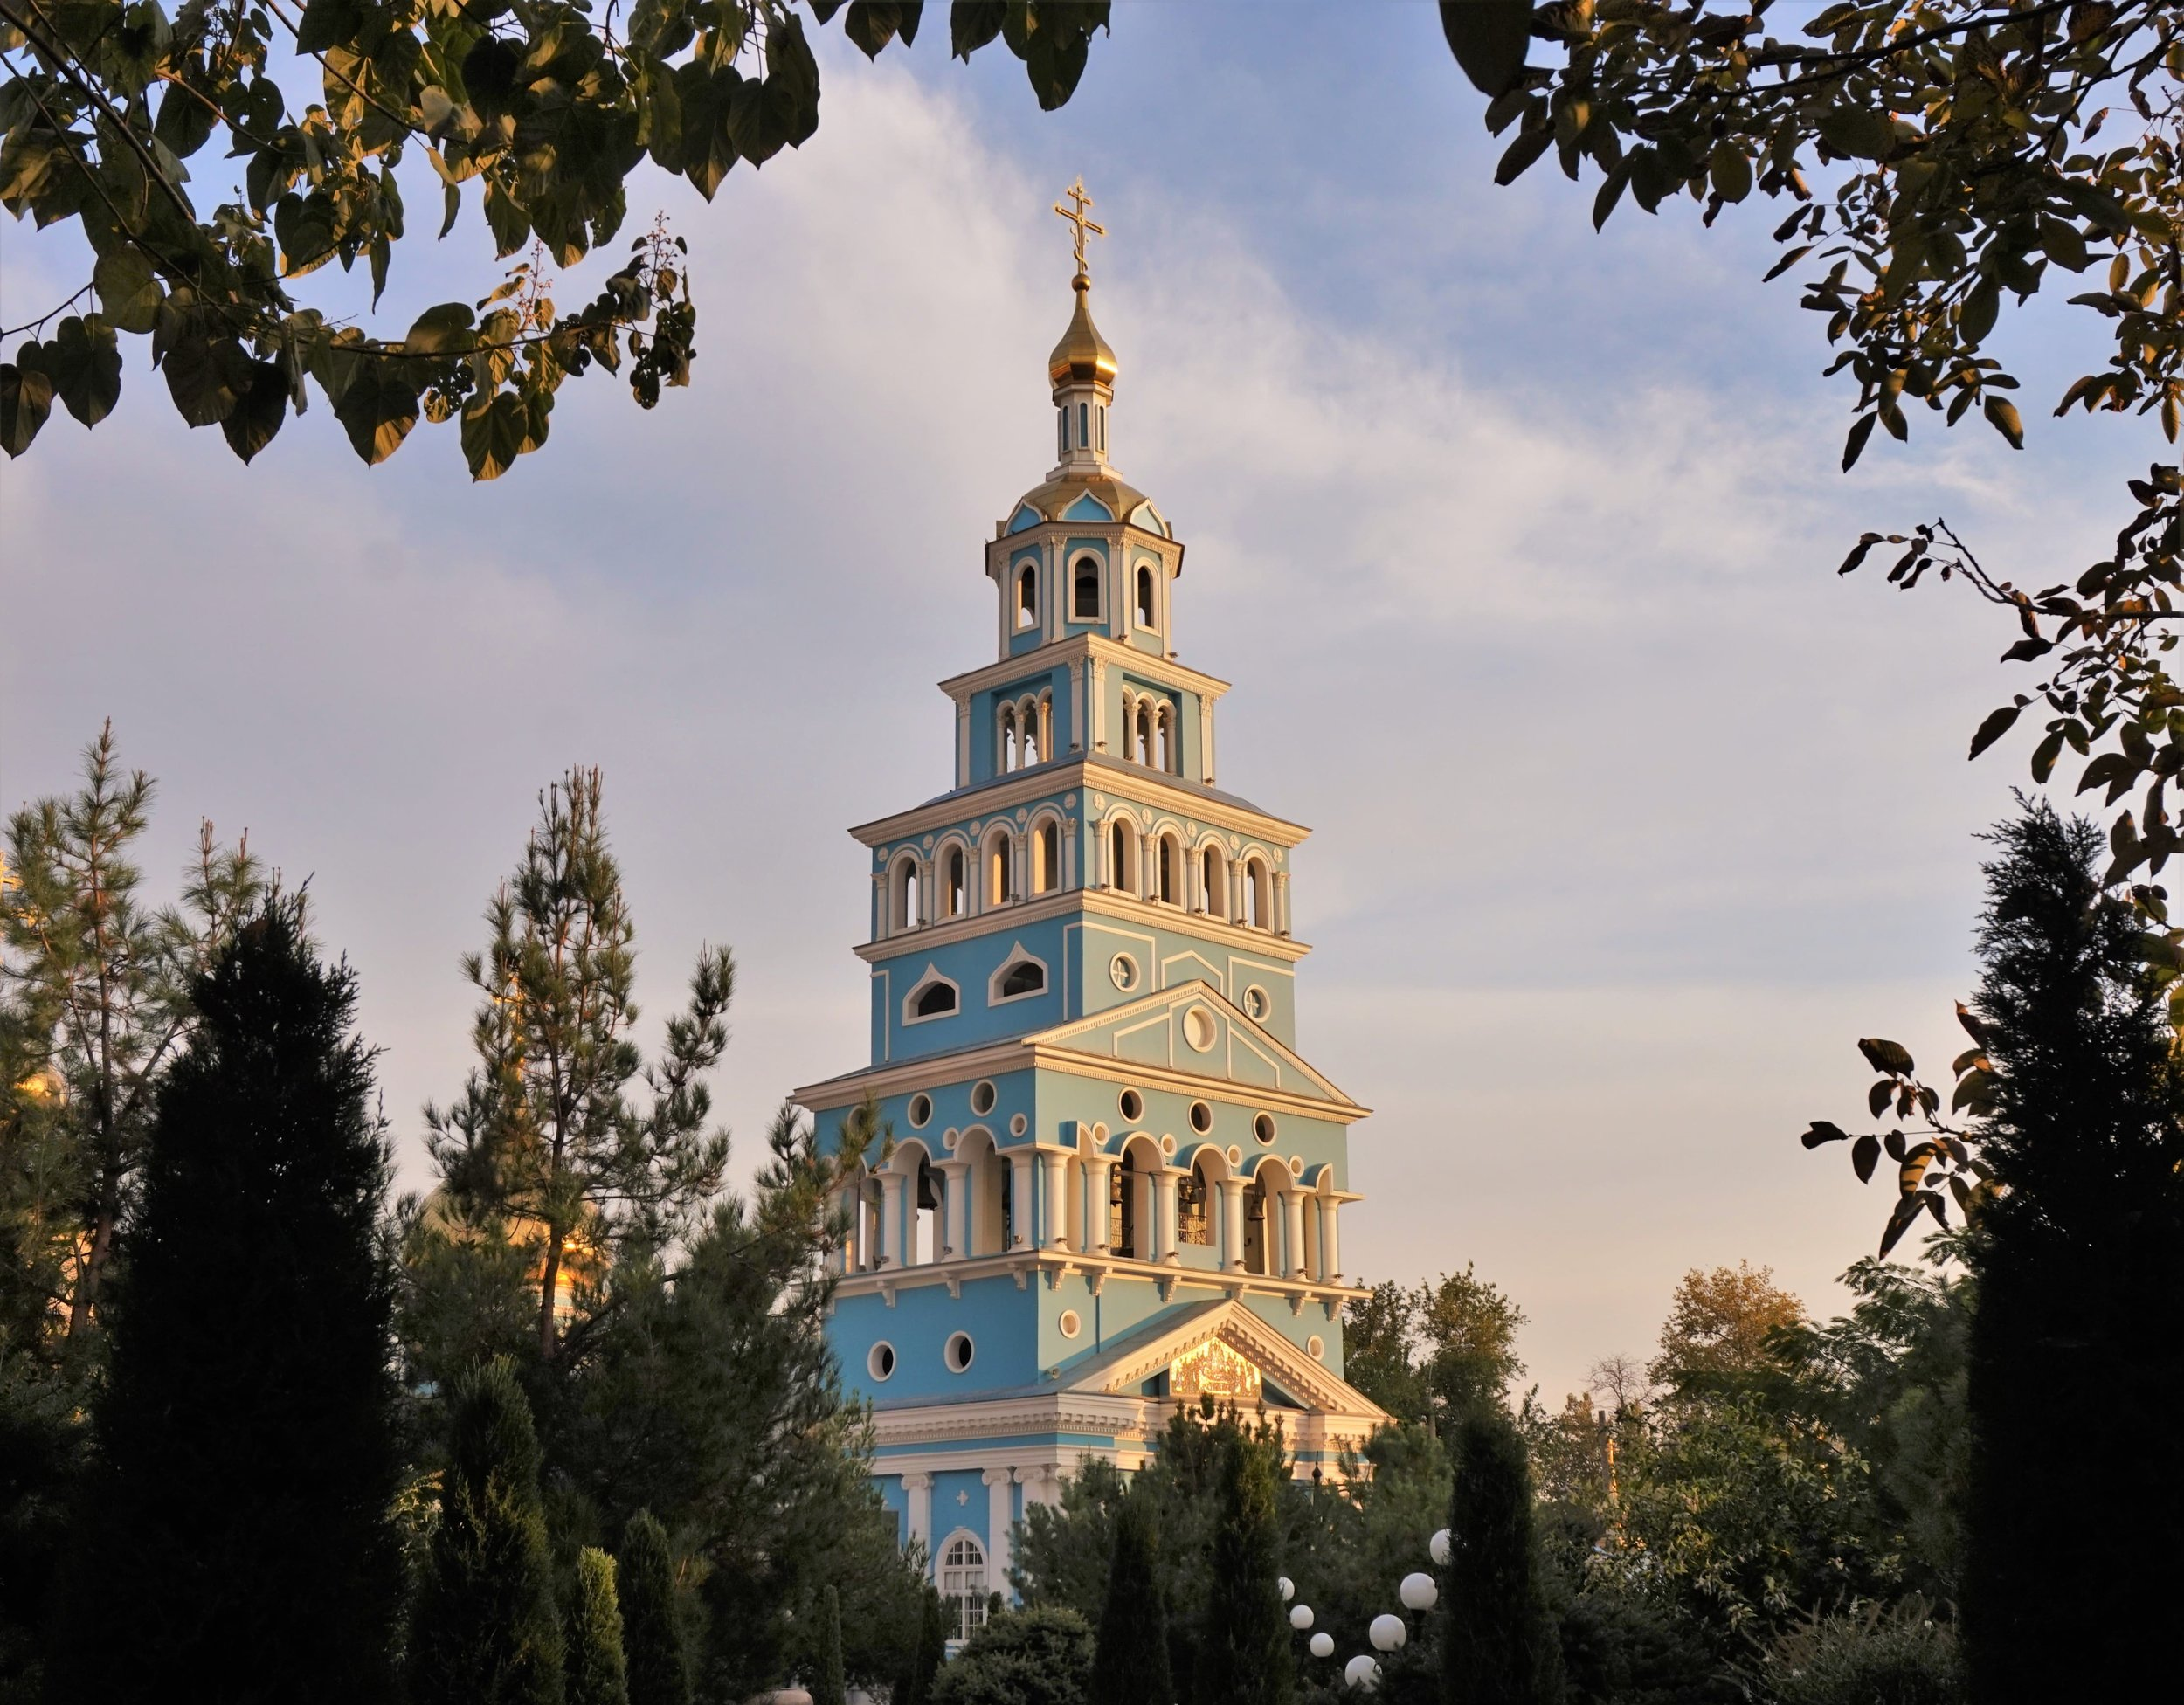 The orthodox church in Tashkent is an impressive building and one of the best things to see in Tashkent, Uzbekistan!